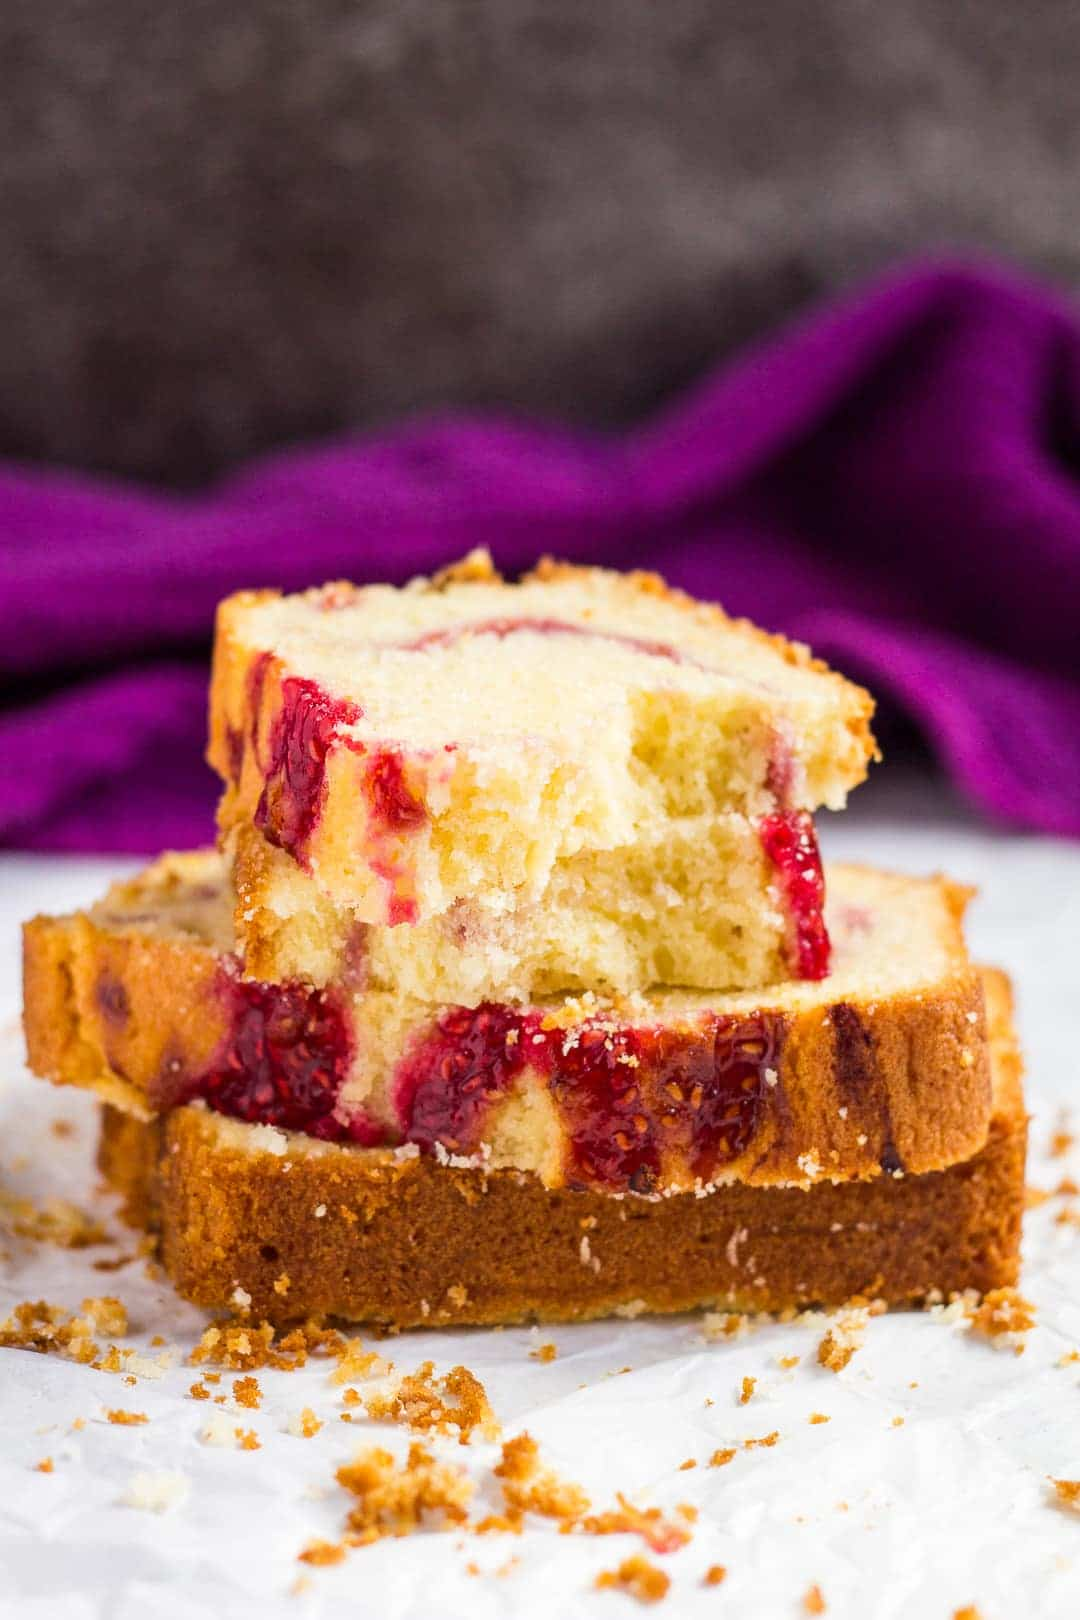 A stack of raspberry swirl lemon pound cake slices with the top slice cut in half.